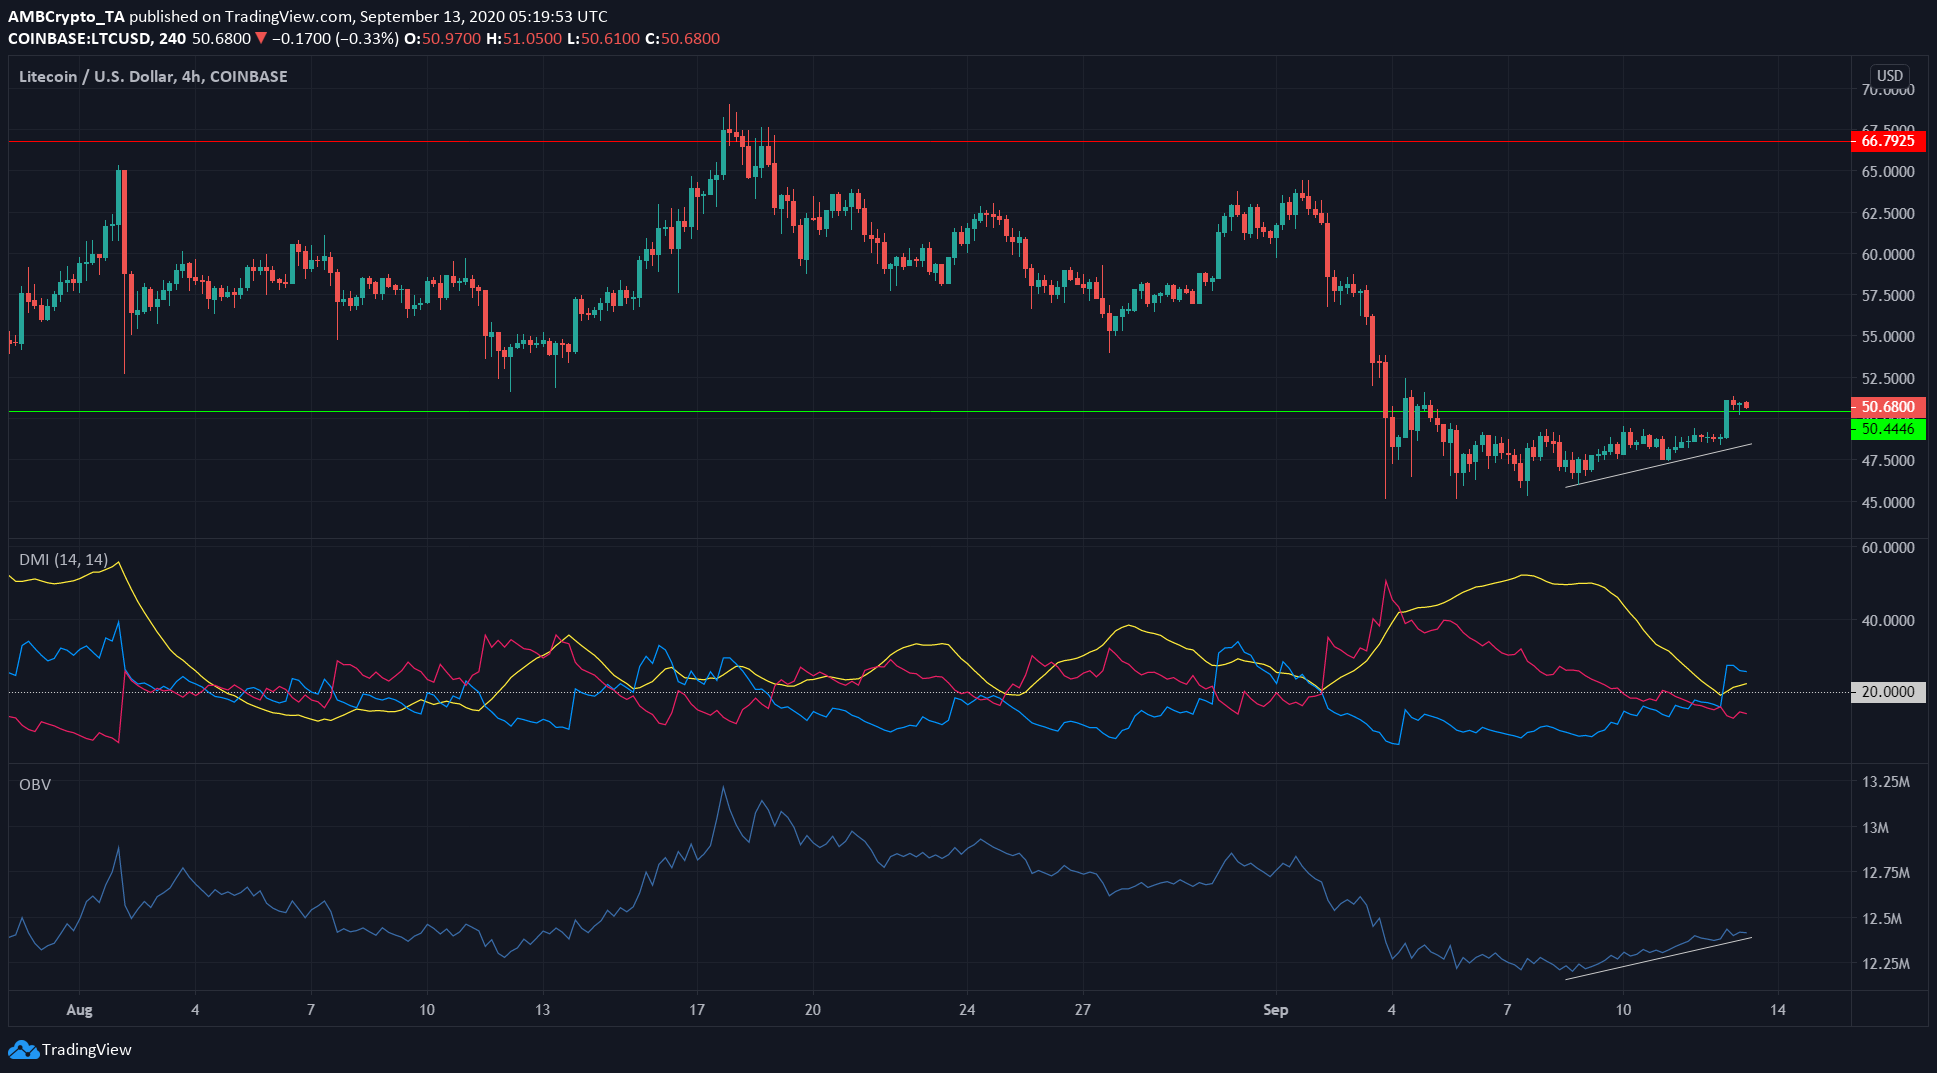 Litecoin, IOTA, Synthetix Price Analysis: 13 September